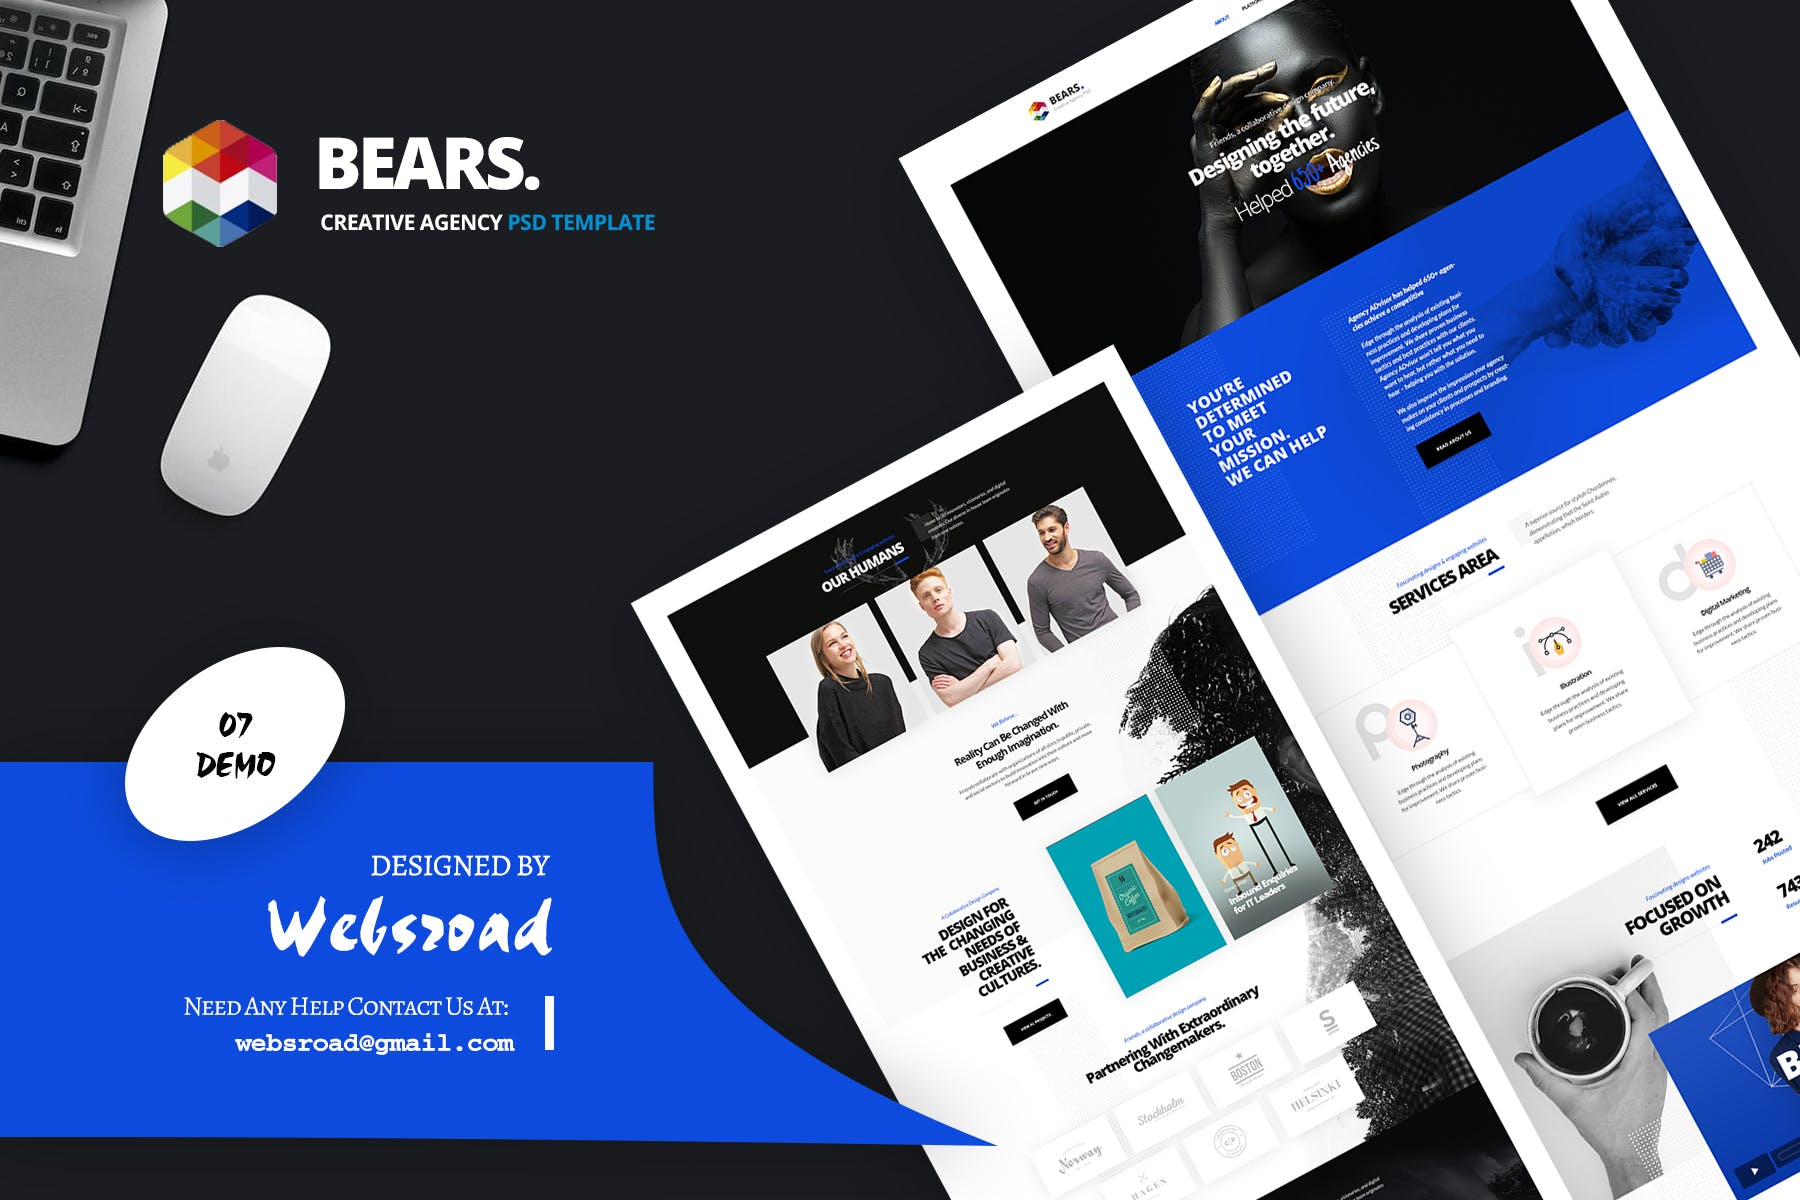 WEB端创意机构网站界面 Bear\'s - Creative Agency PSD Template